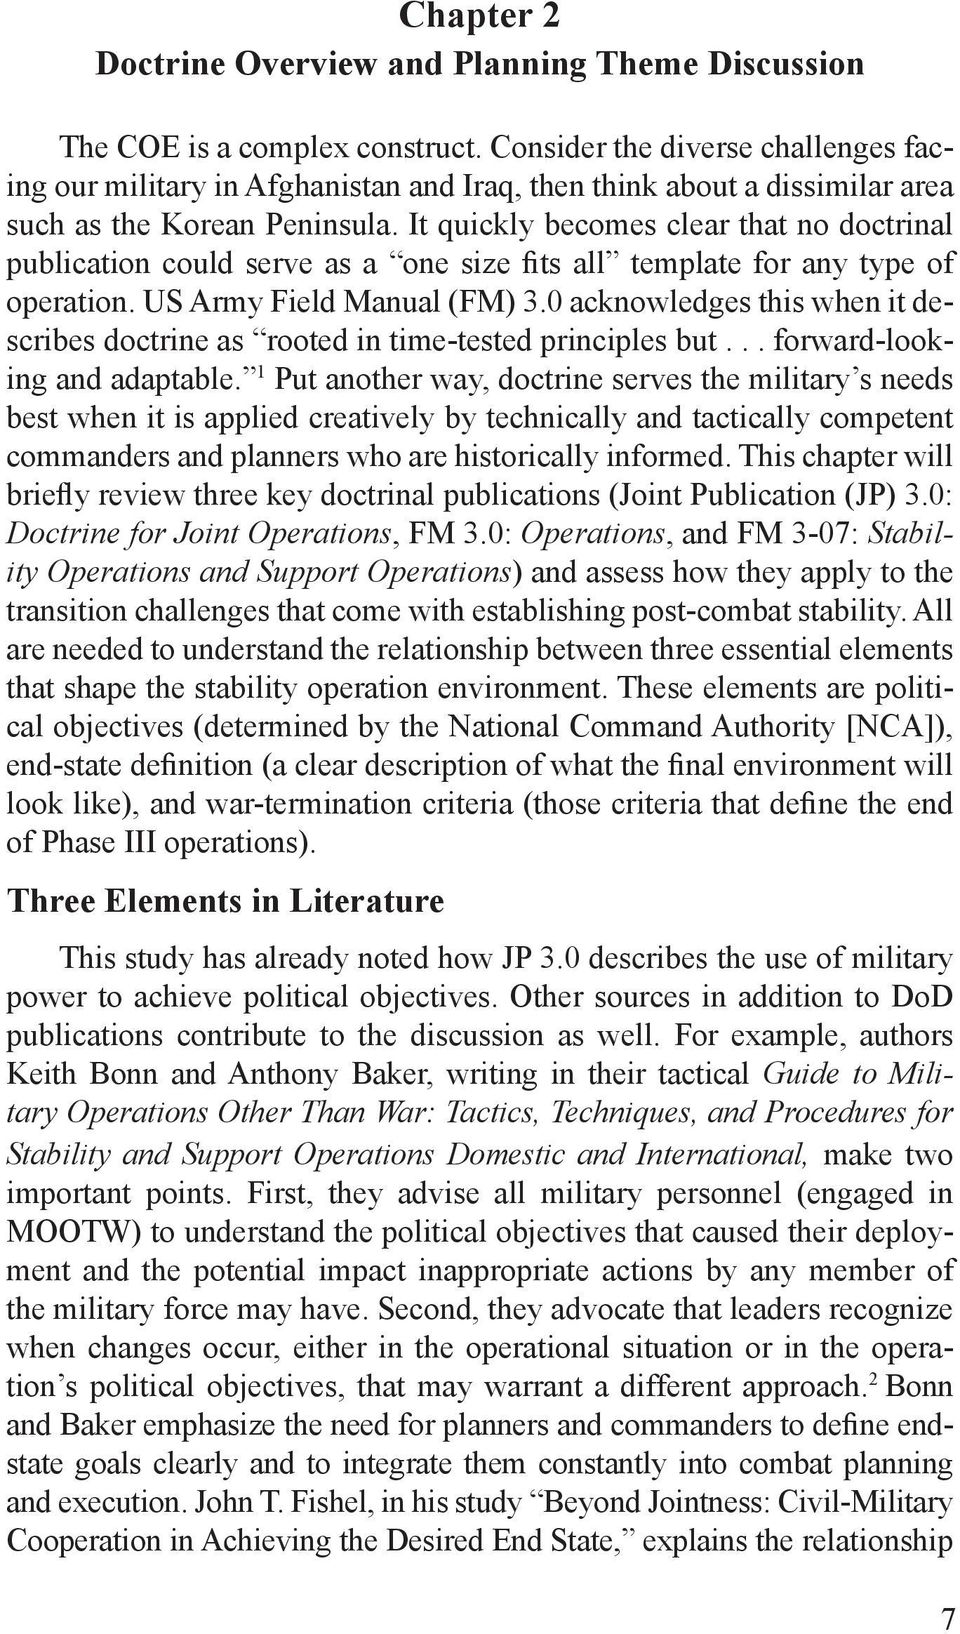 It quickly becomes clear that no doctrinal publication could serve as a one size fits all template for any type of operation. US Army Field Manual (FM) 3.